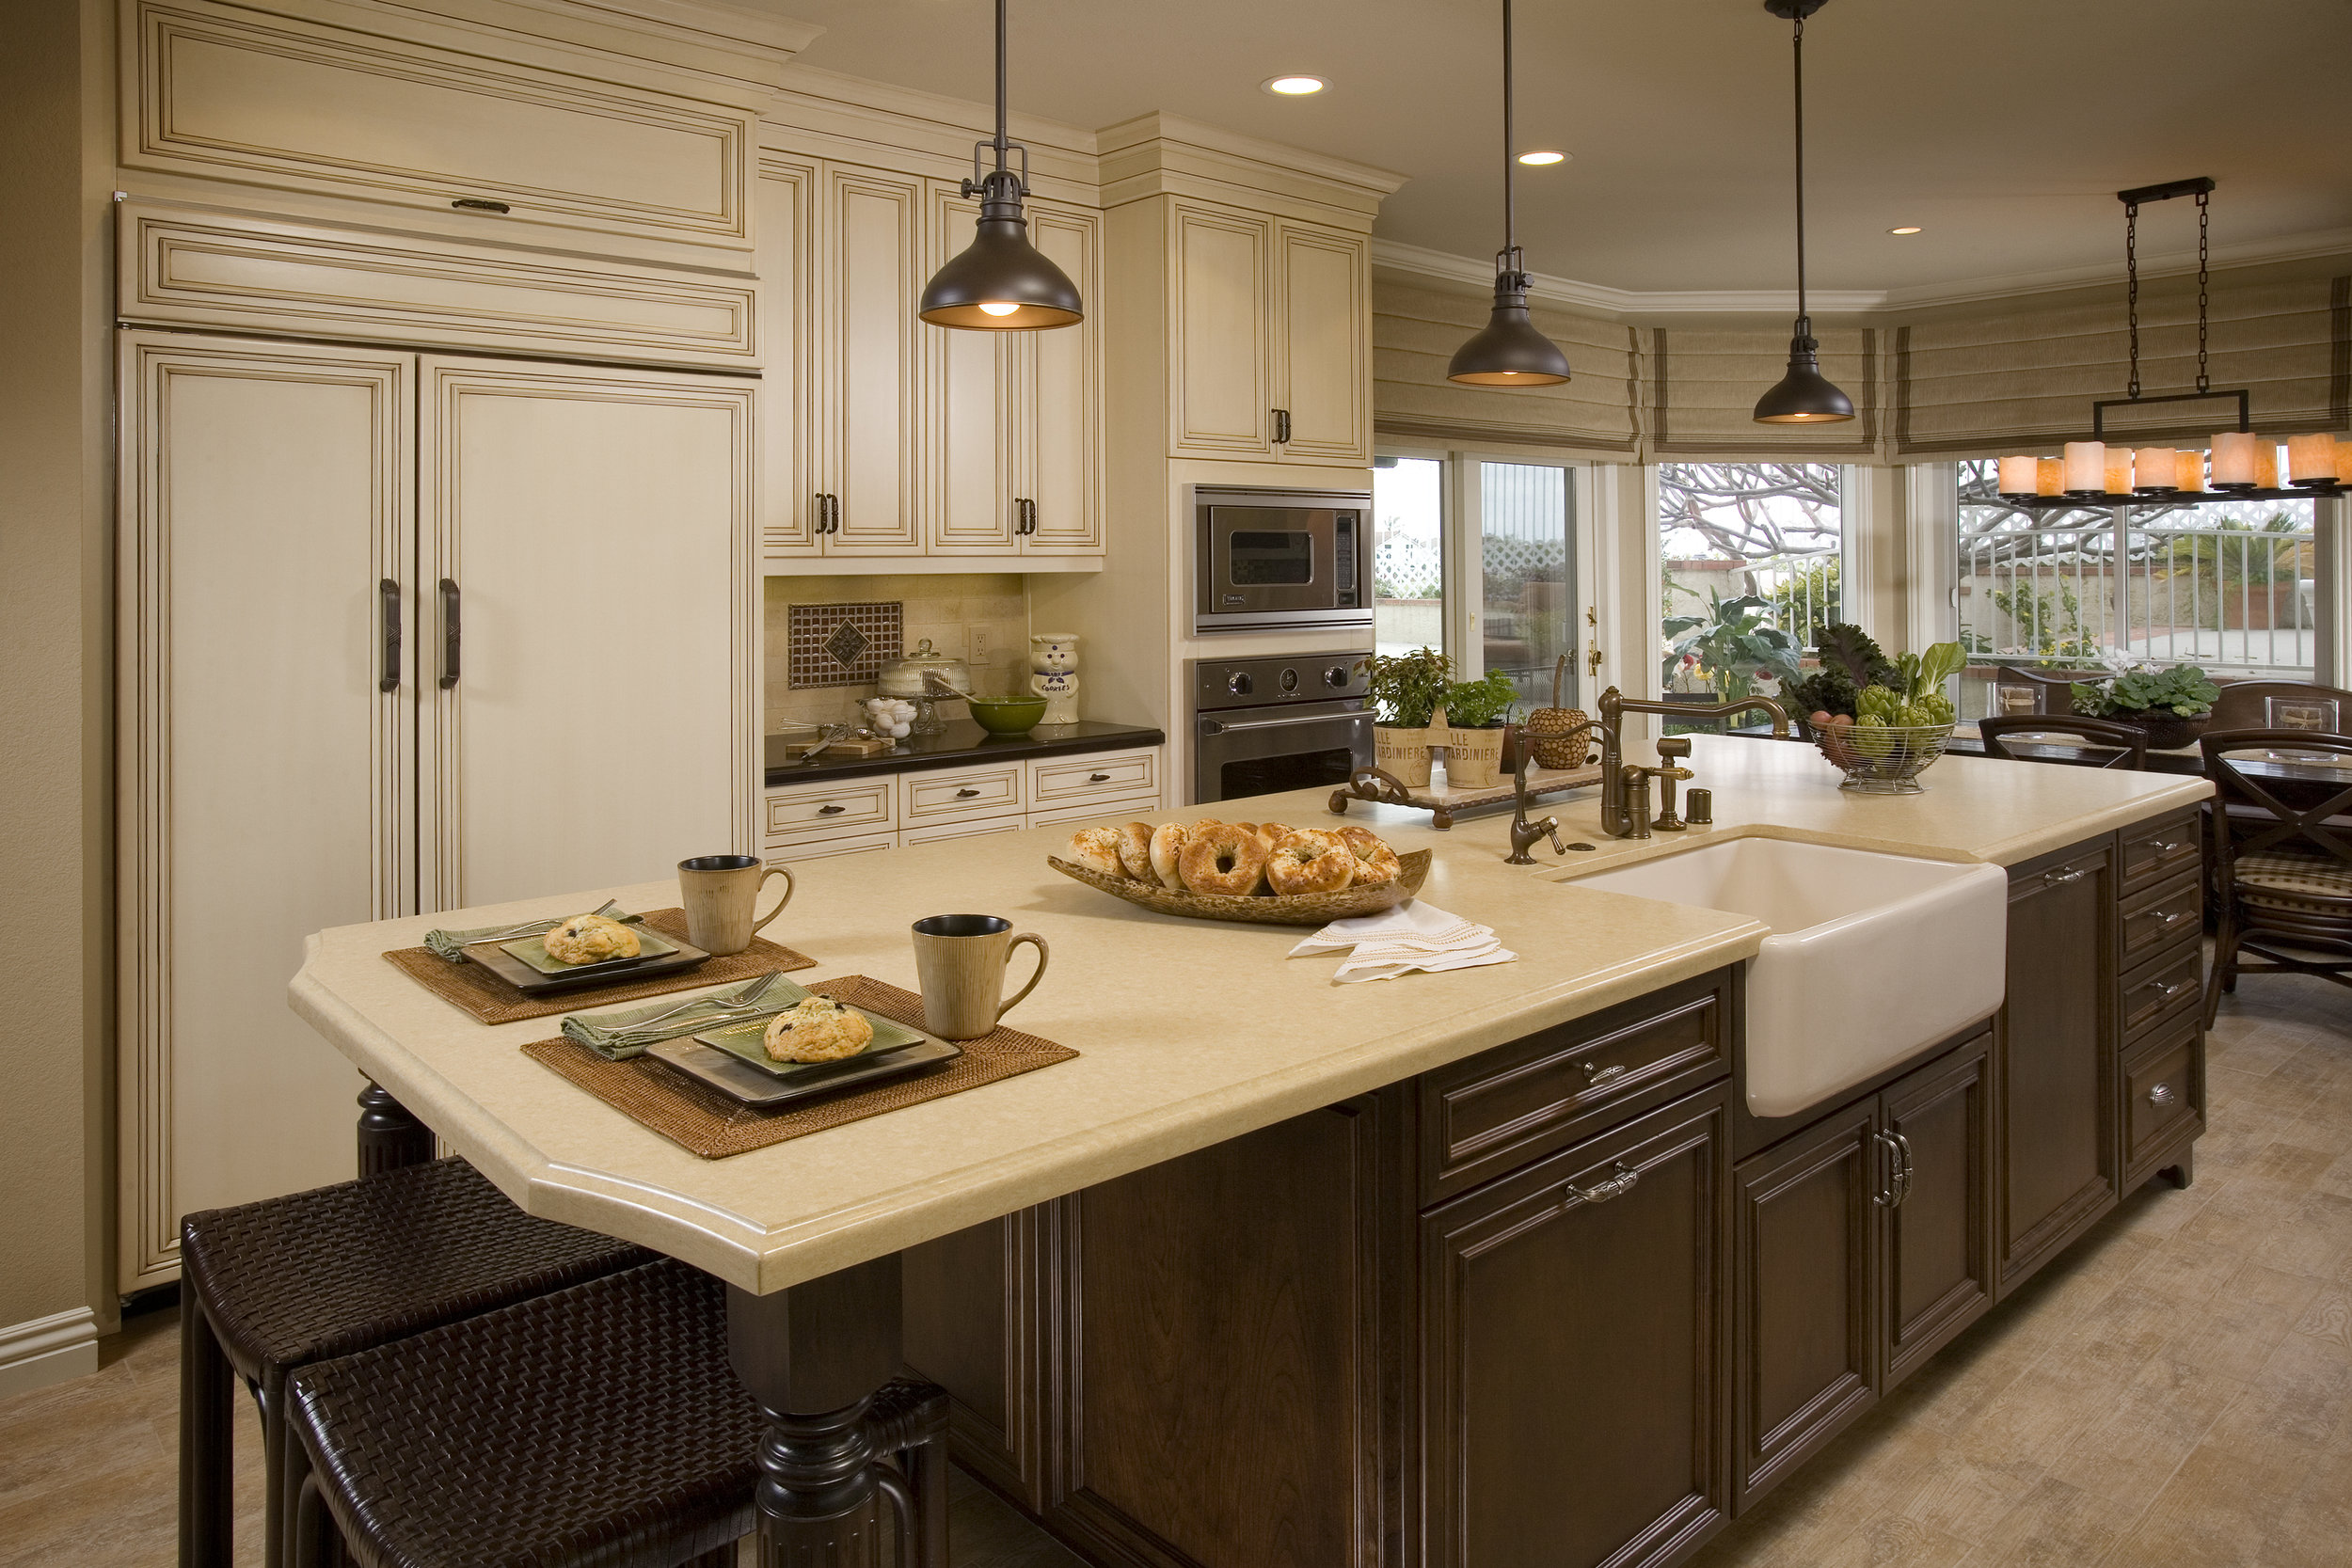 Harneyer_kitchen2-ret.jpg